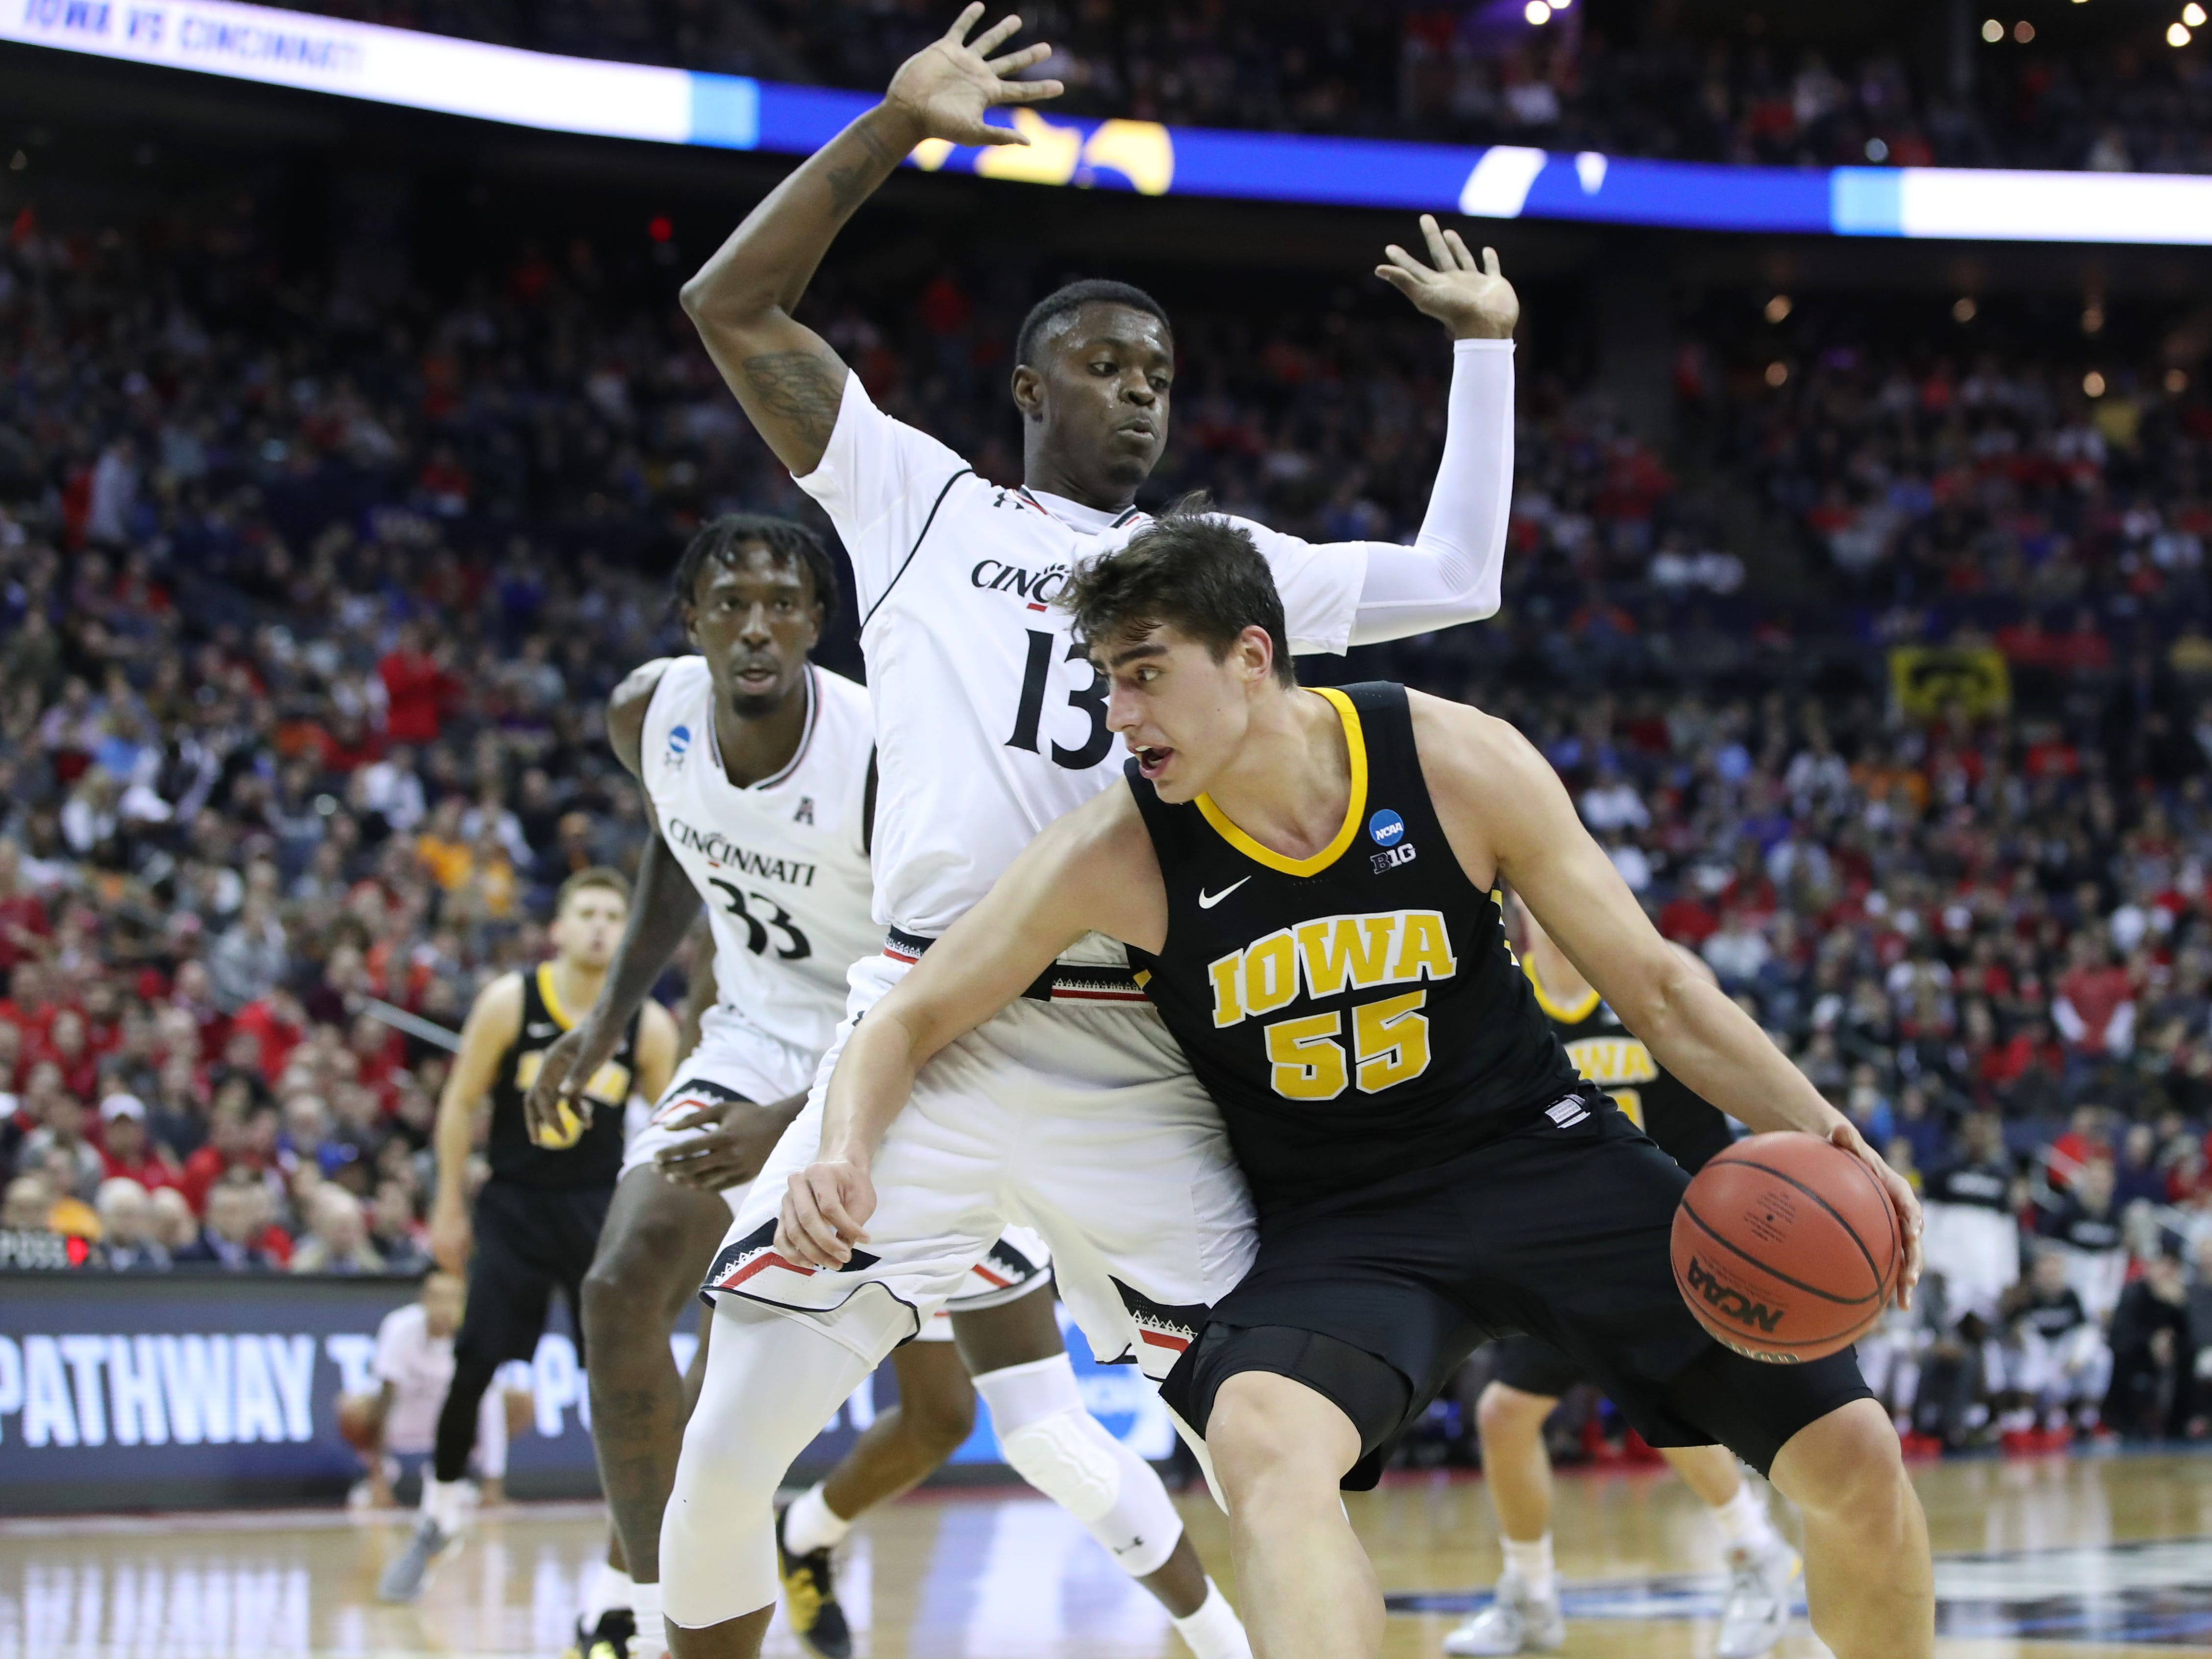 Iowa Hawkeyes forward Luka Garza (55) looks to move the ball defended by Cincinnati Bearcats forward Tre Scott (13) in the second half in the first round of the 2019 NCAA Tournament at Nationwide Arena on March 22, 2019.